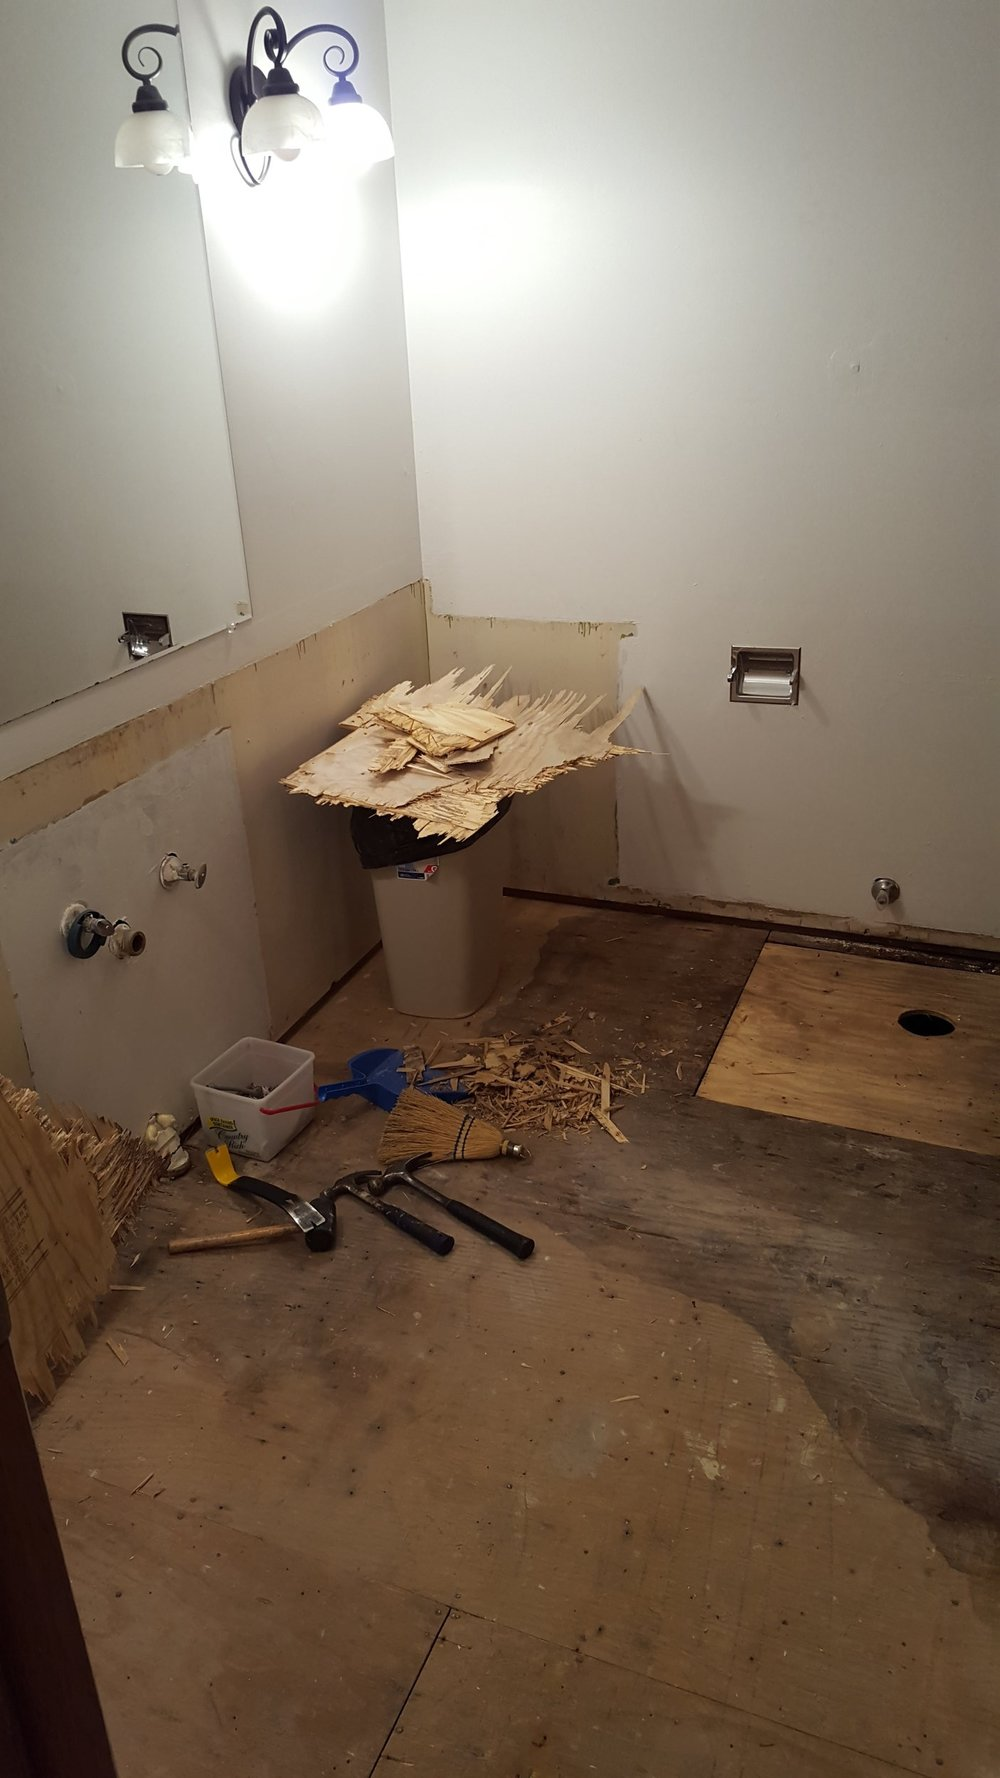 diy bathroom remodel - end of day 1